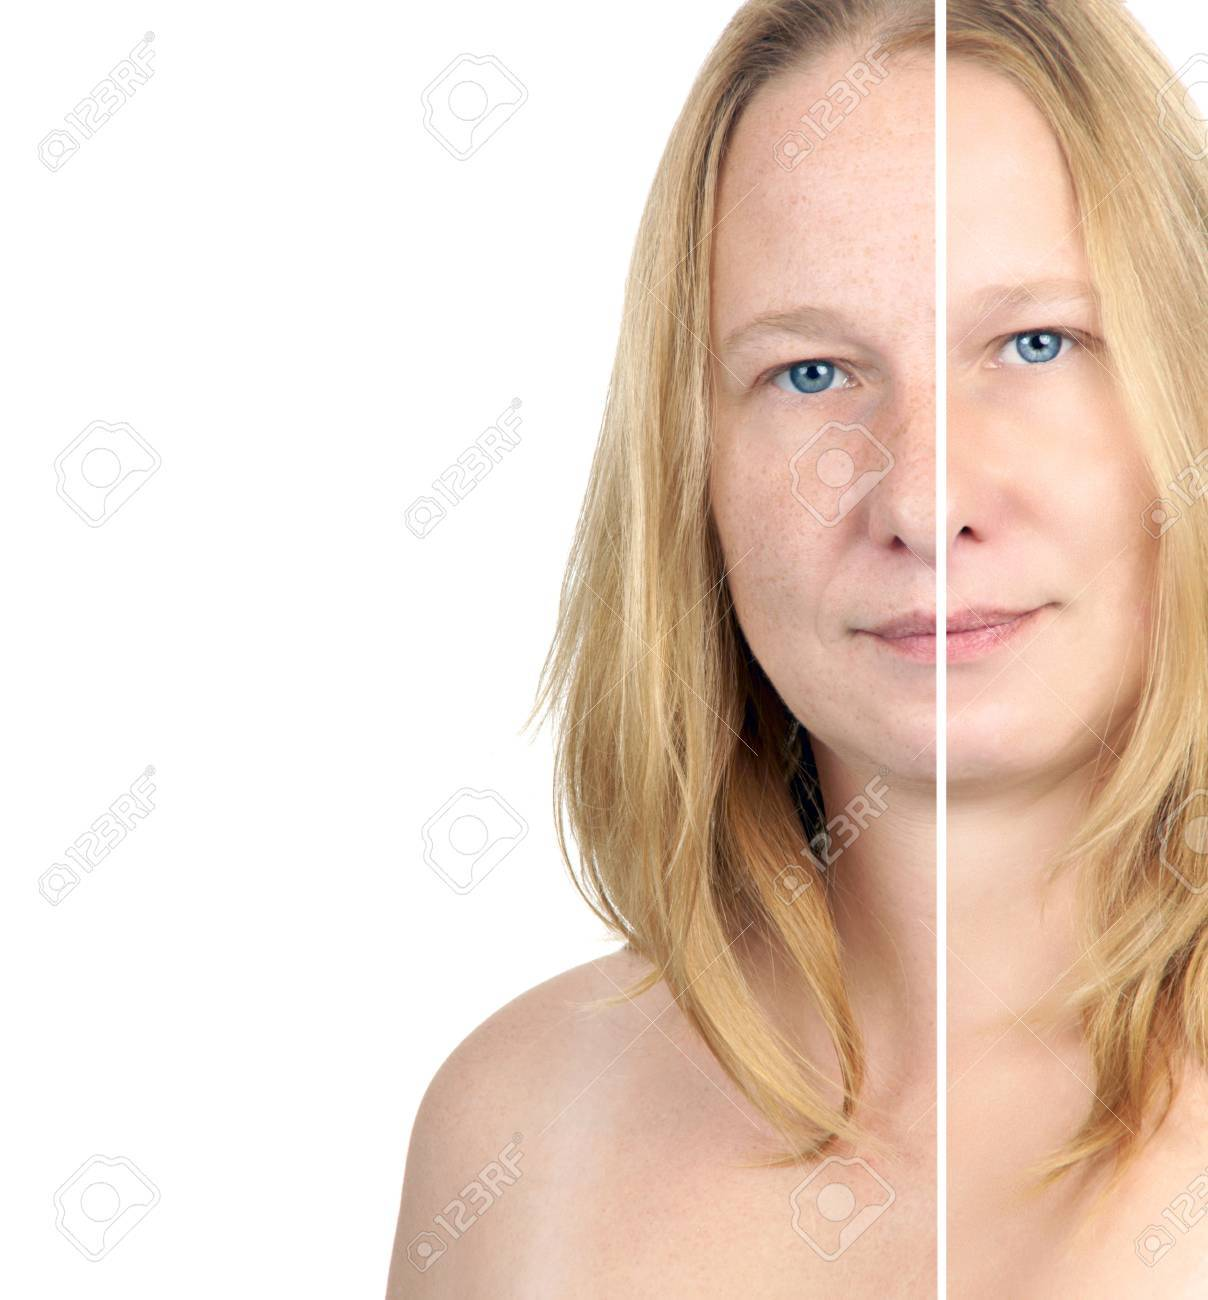 before after image of a woman - 15338948